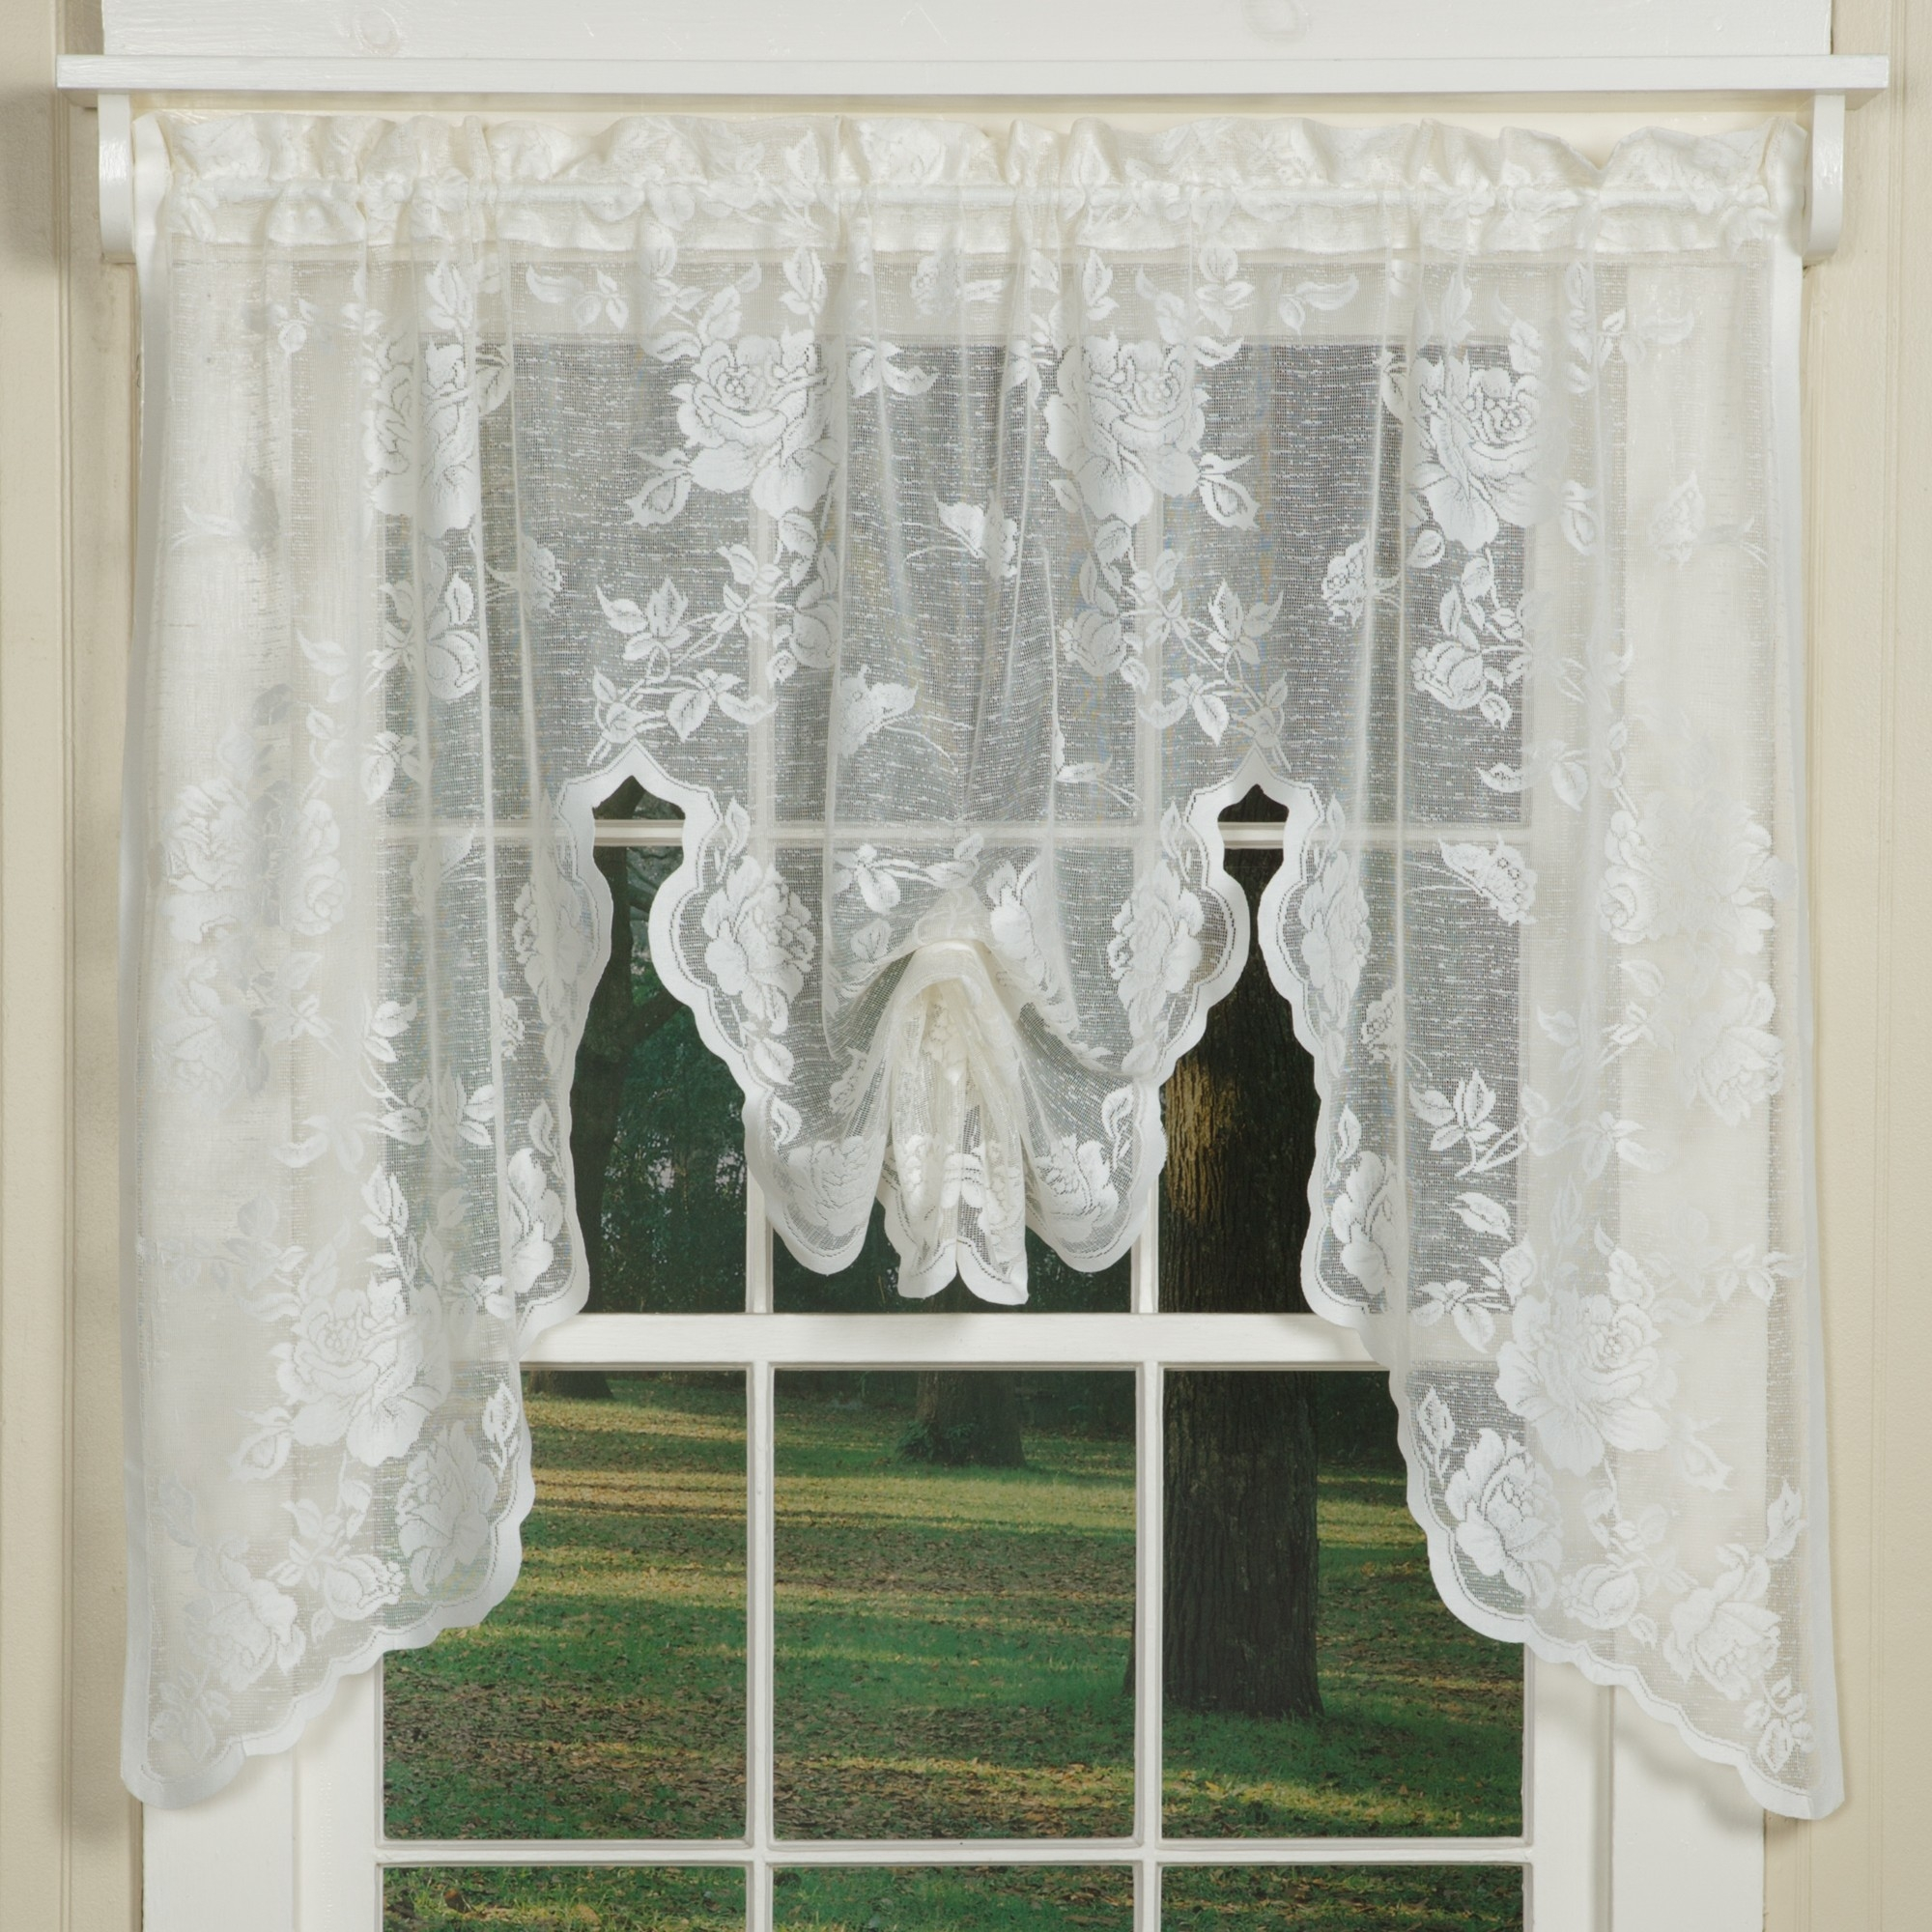 25 Lace Curtains